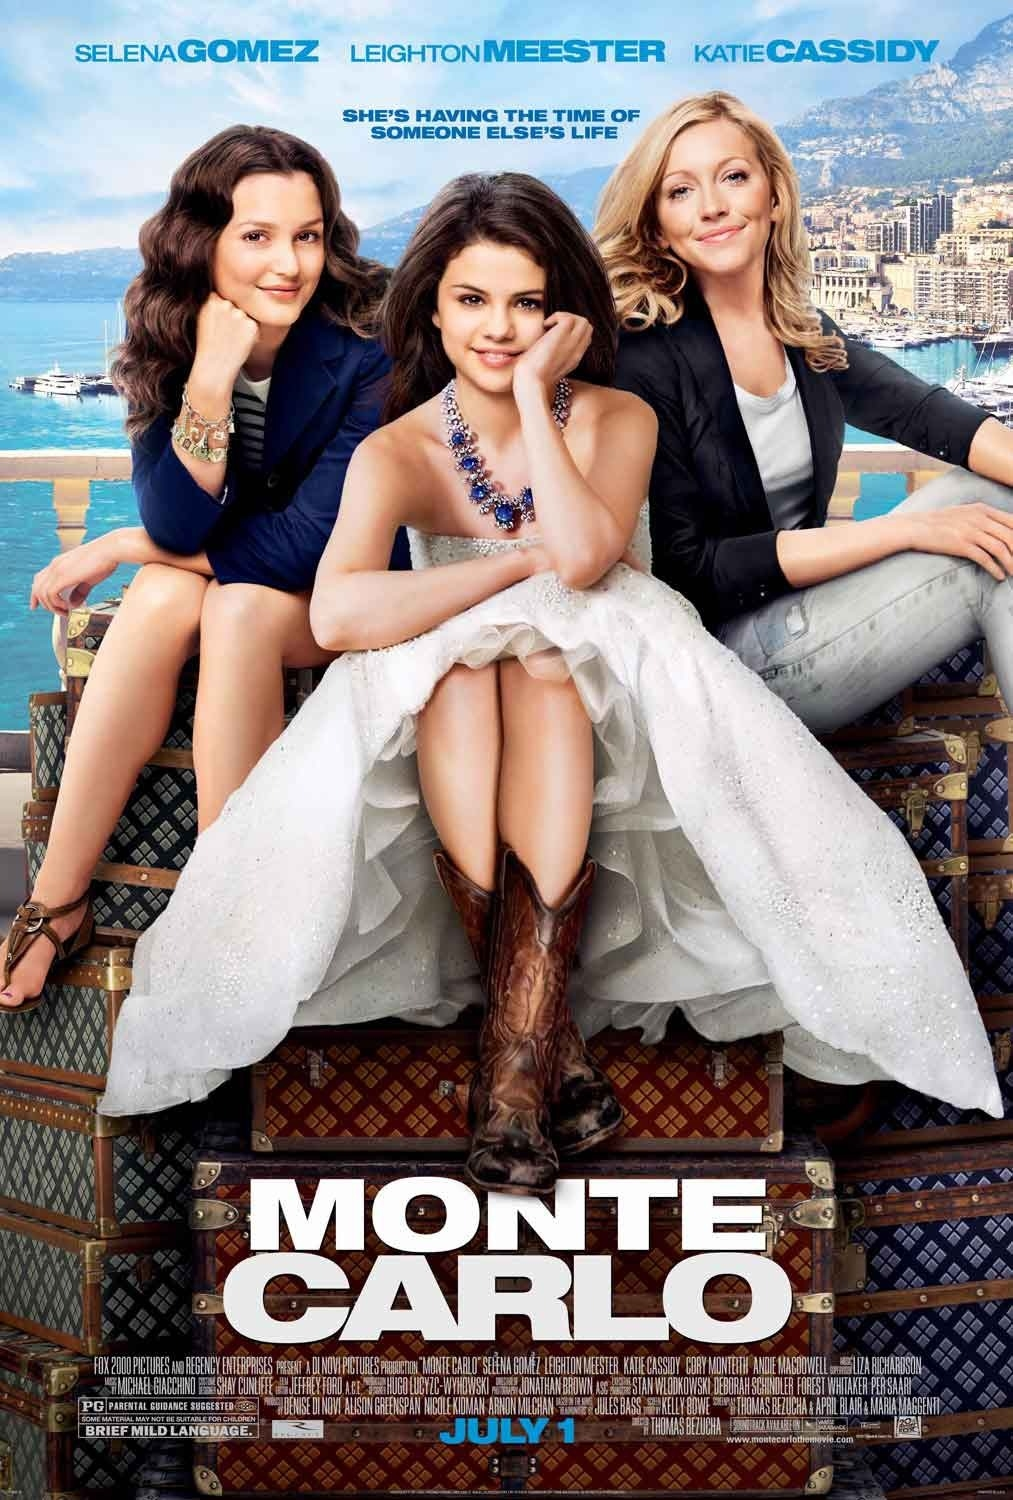 Monte Carlo (2011) DVDrip XvID [HOT]